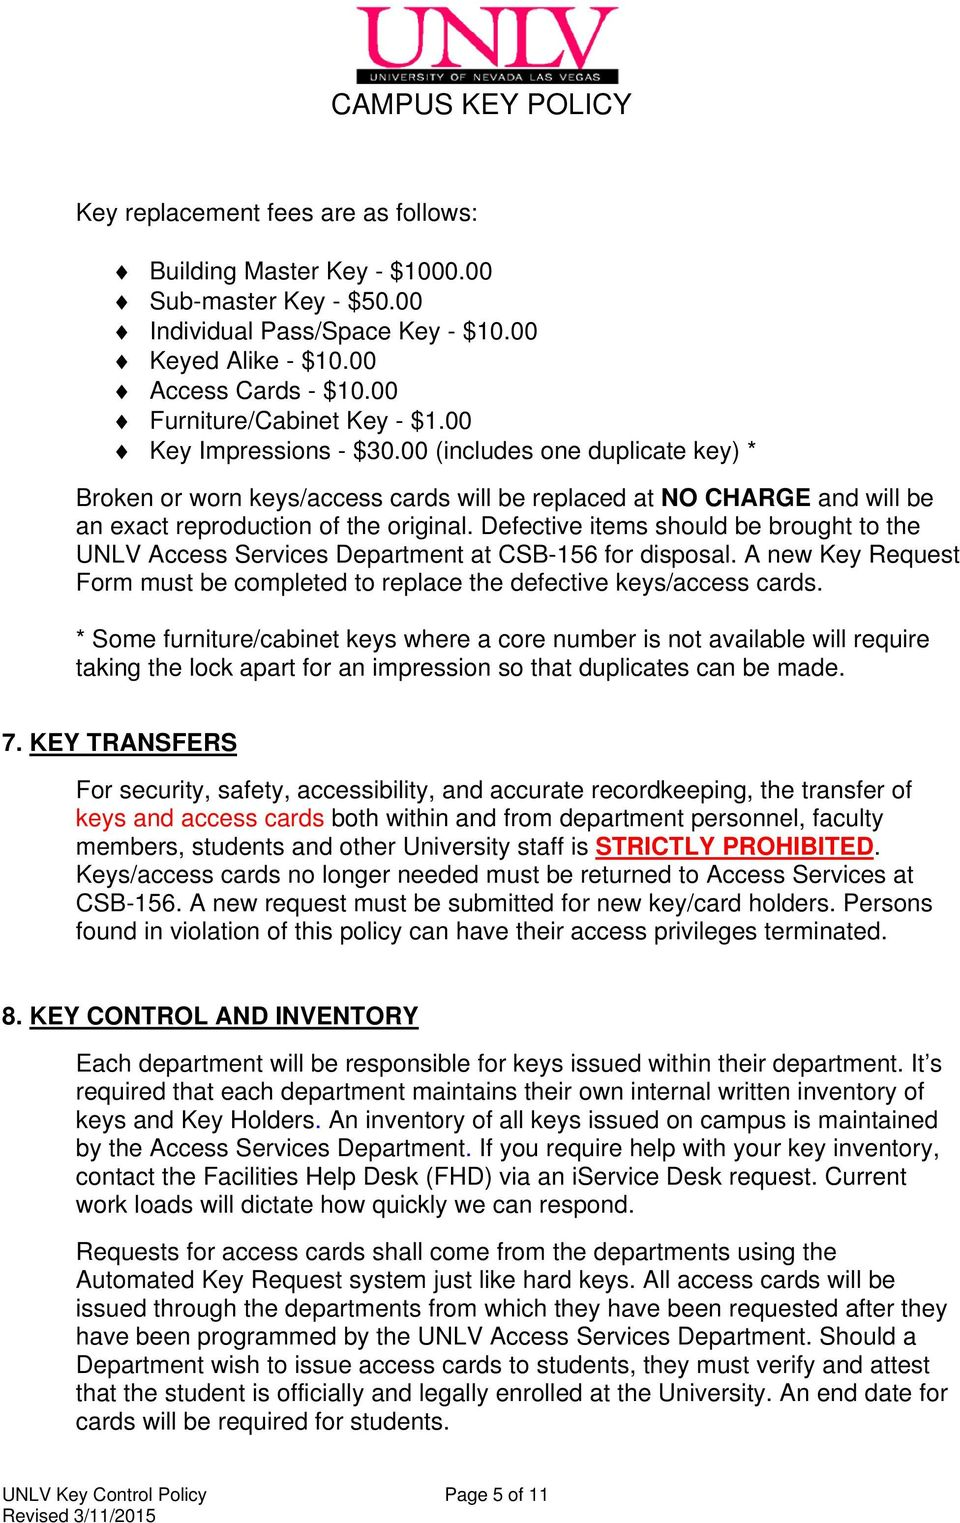 Defective items should be brought to the UNLV Access Services Department at CSB-156 for disposal. A new Key Request Form must be completed to replace the defective keys/access cards.